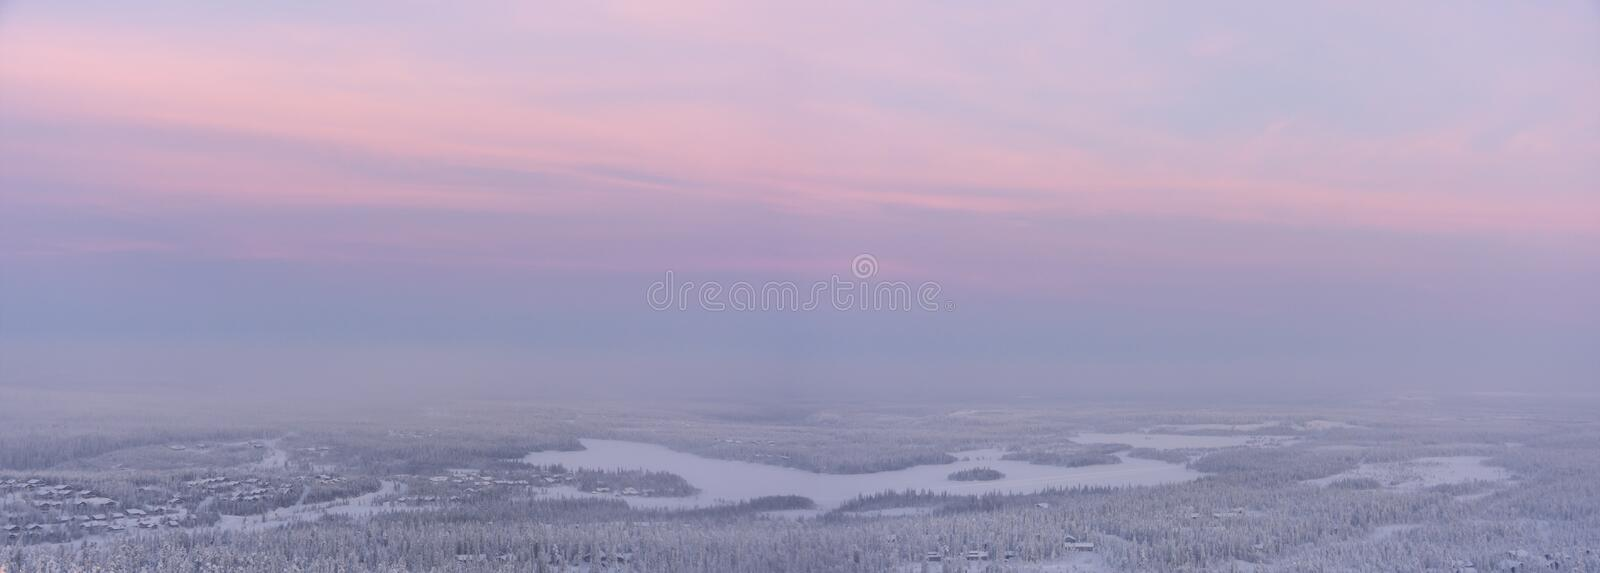 Winter Landscape At Sunset Stock Images